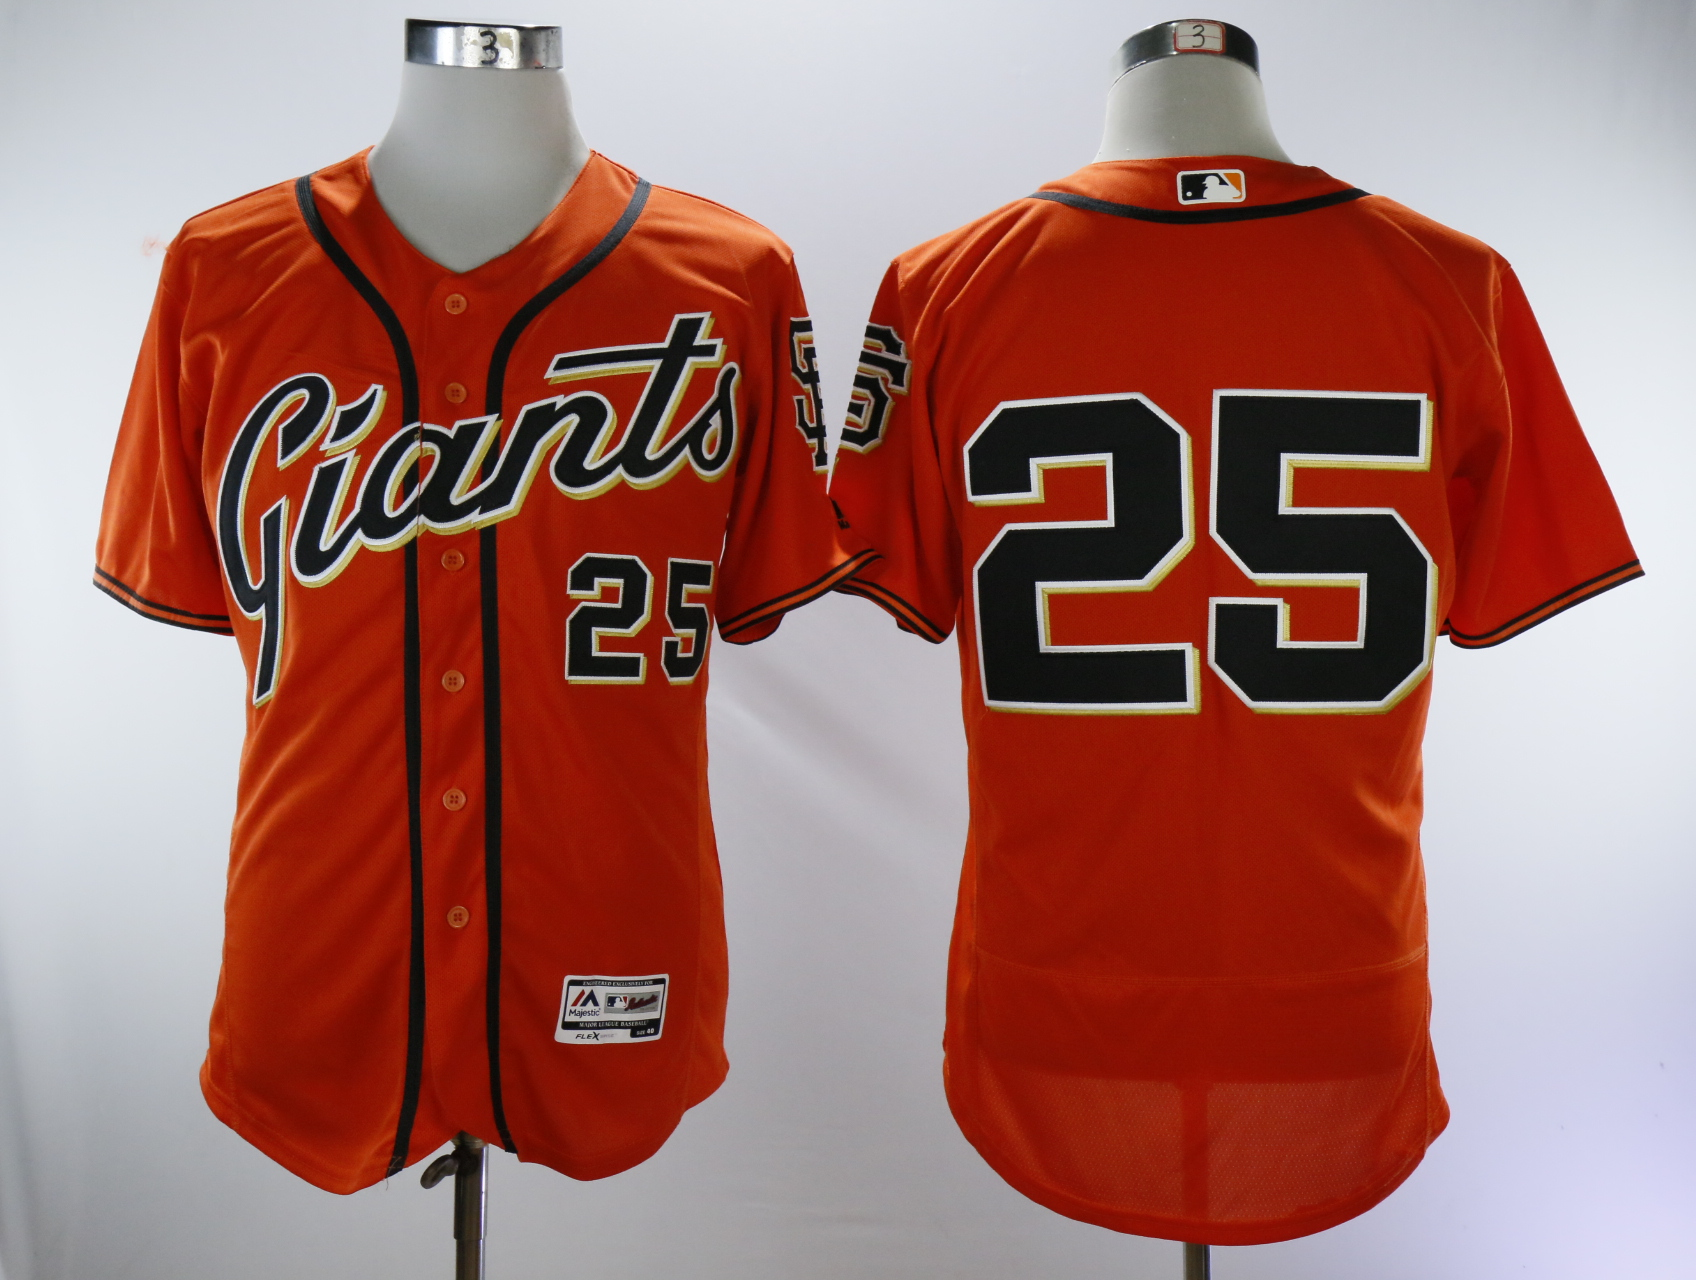 Men San Francisco Giants 25 Bonds Orange Throwback MLB Jerseys